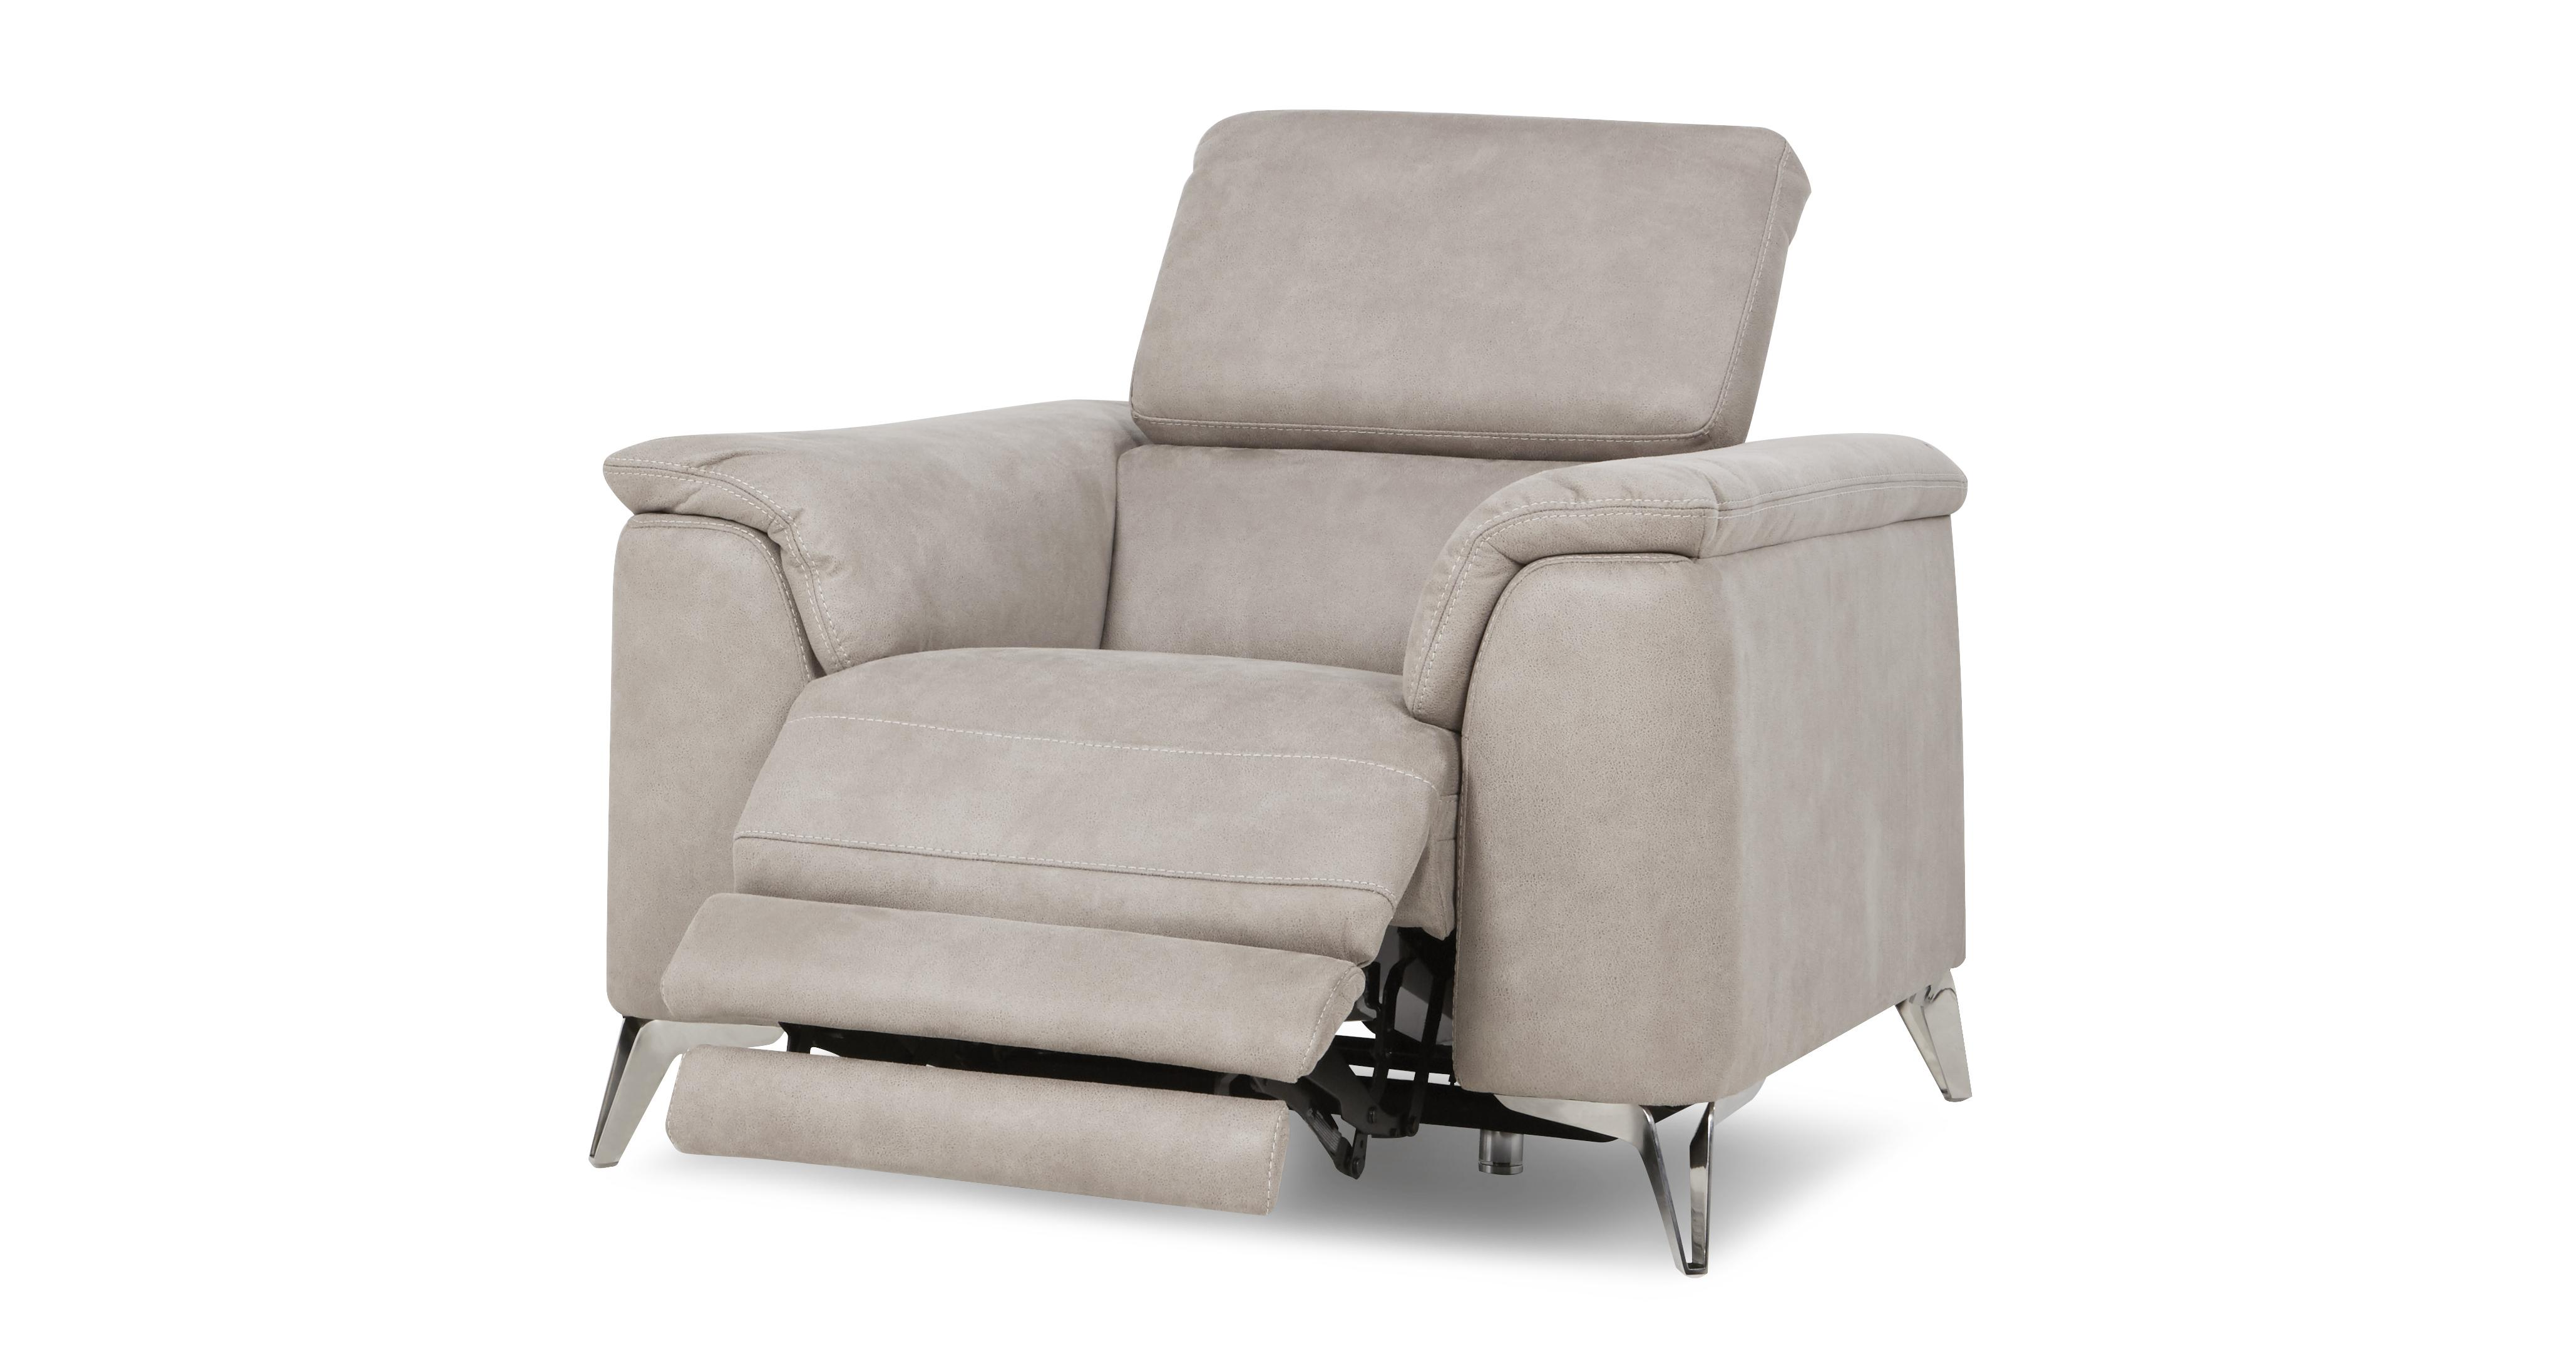 Electric Reclining Chair Tahiti Electric Recliner Chair Arizona Dfs Ireland